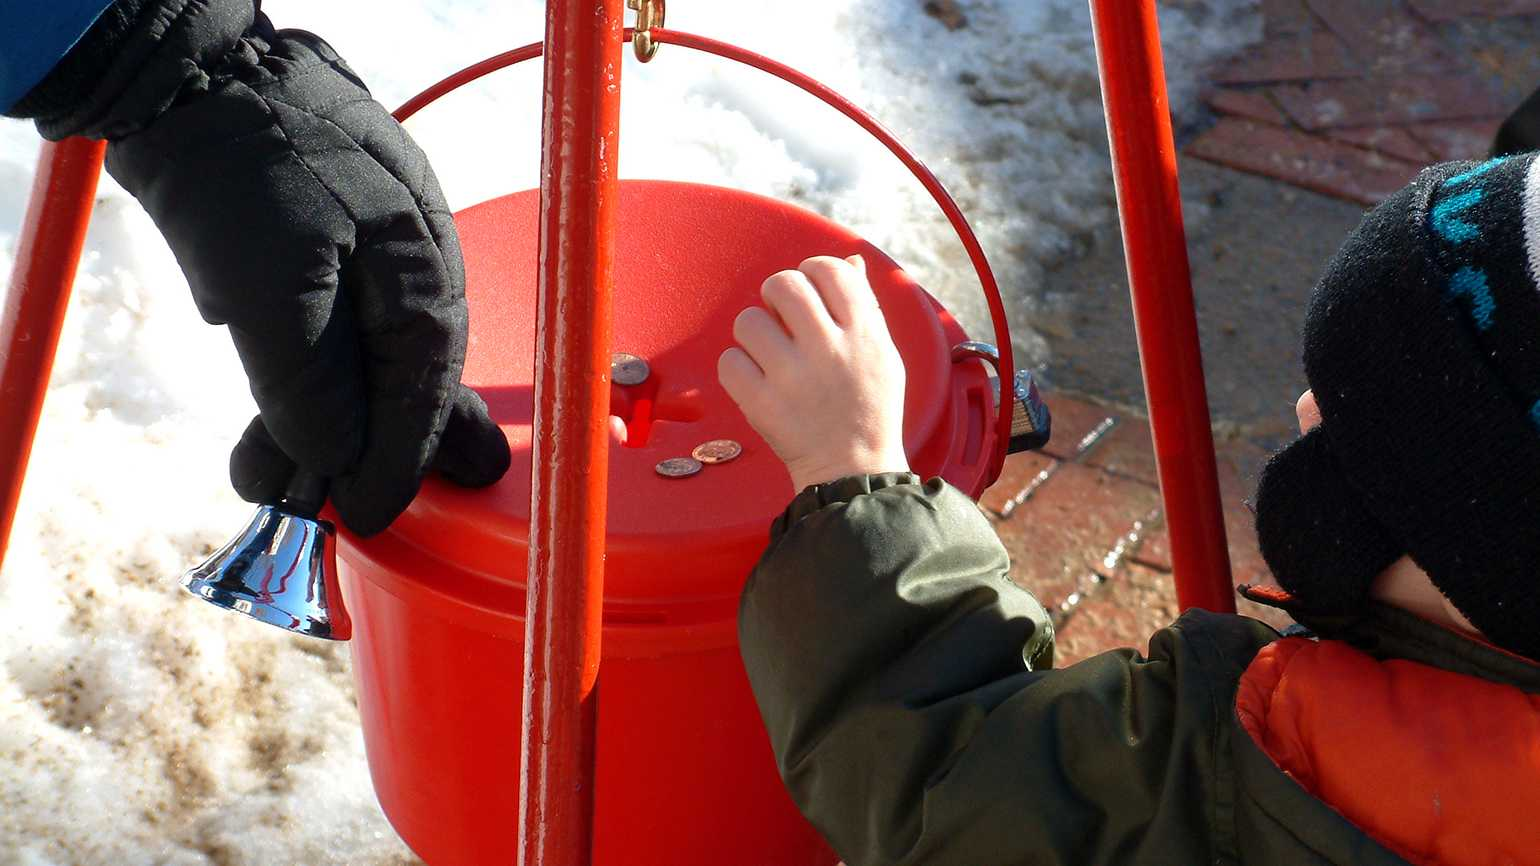 A child places money in a red charity bucket at Christmas